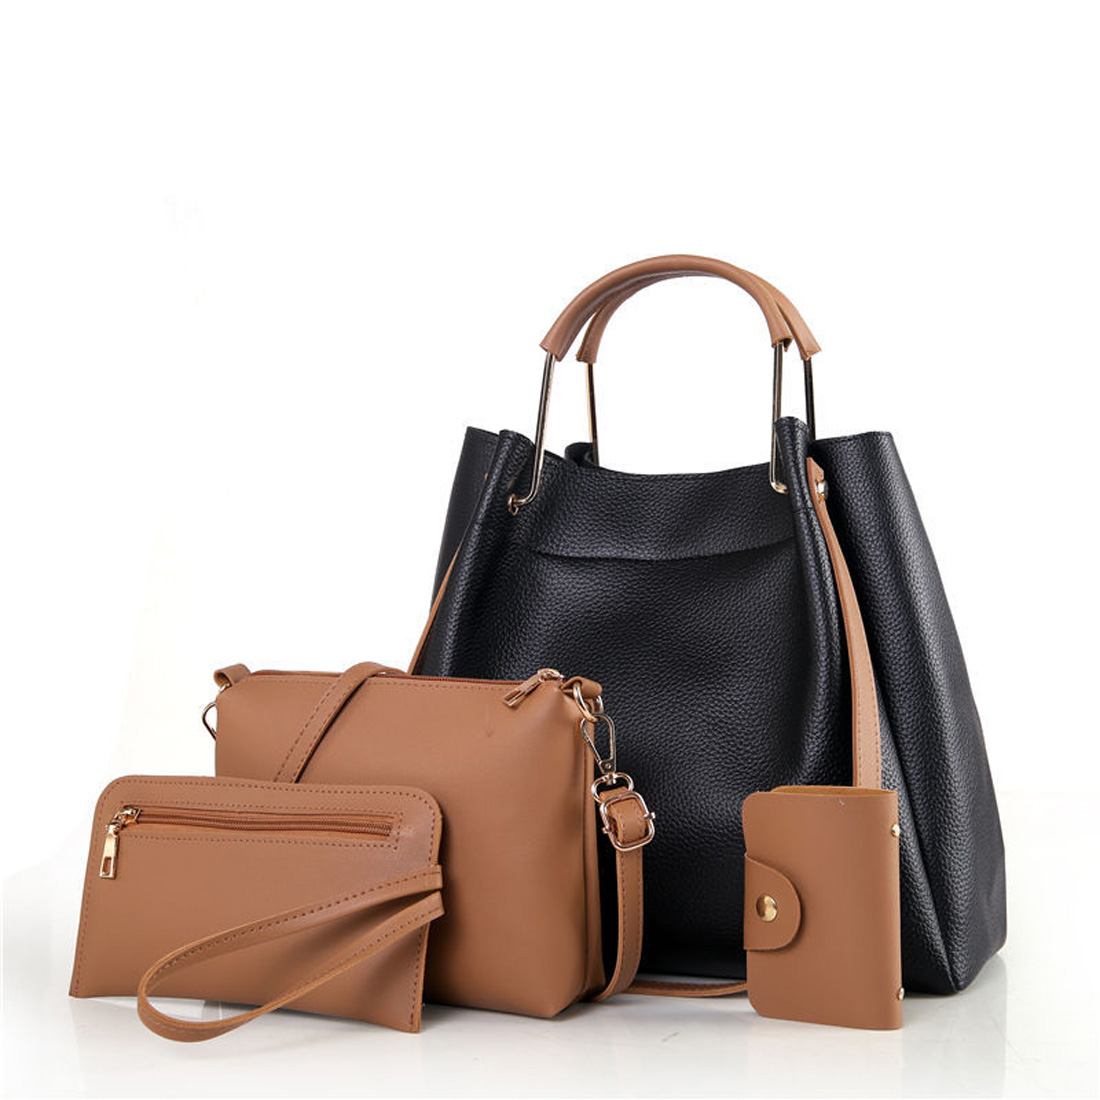 2017 fashion 4pcs/set Women's Handbag PU Leather Women Bag Female Tote bags Ladies  Messenger Bag Purse Composite Shoulder Bag fashion women chain messenger bag female envelope bags clutch purse bag ladies pu leather satchel shoulder handbag